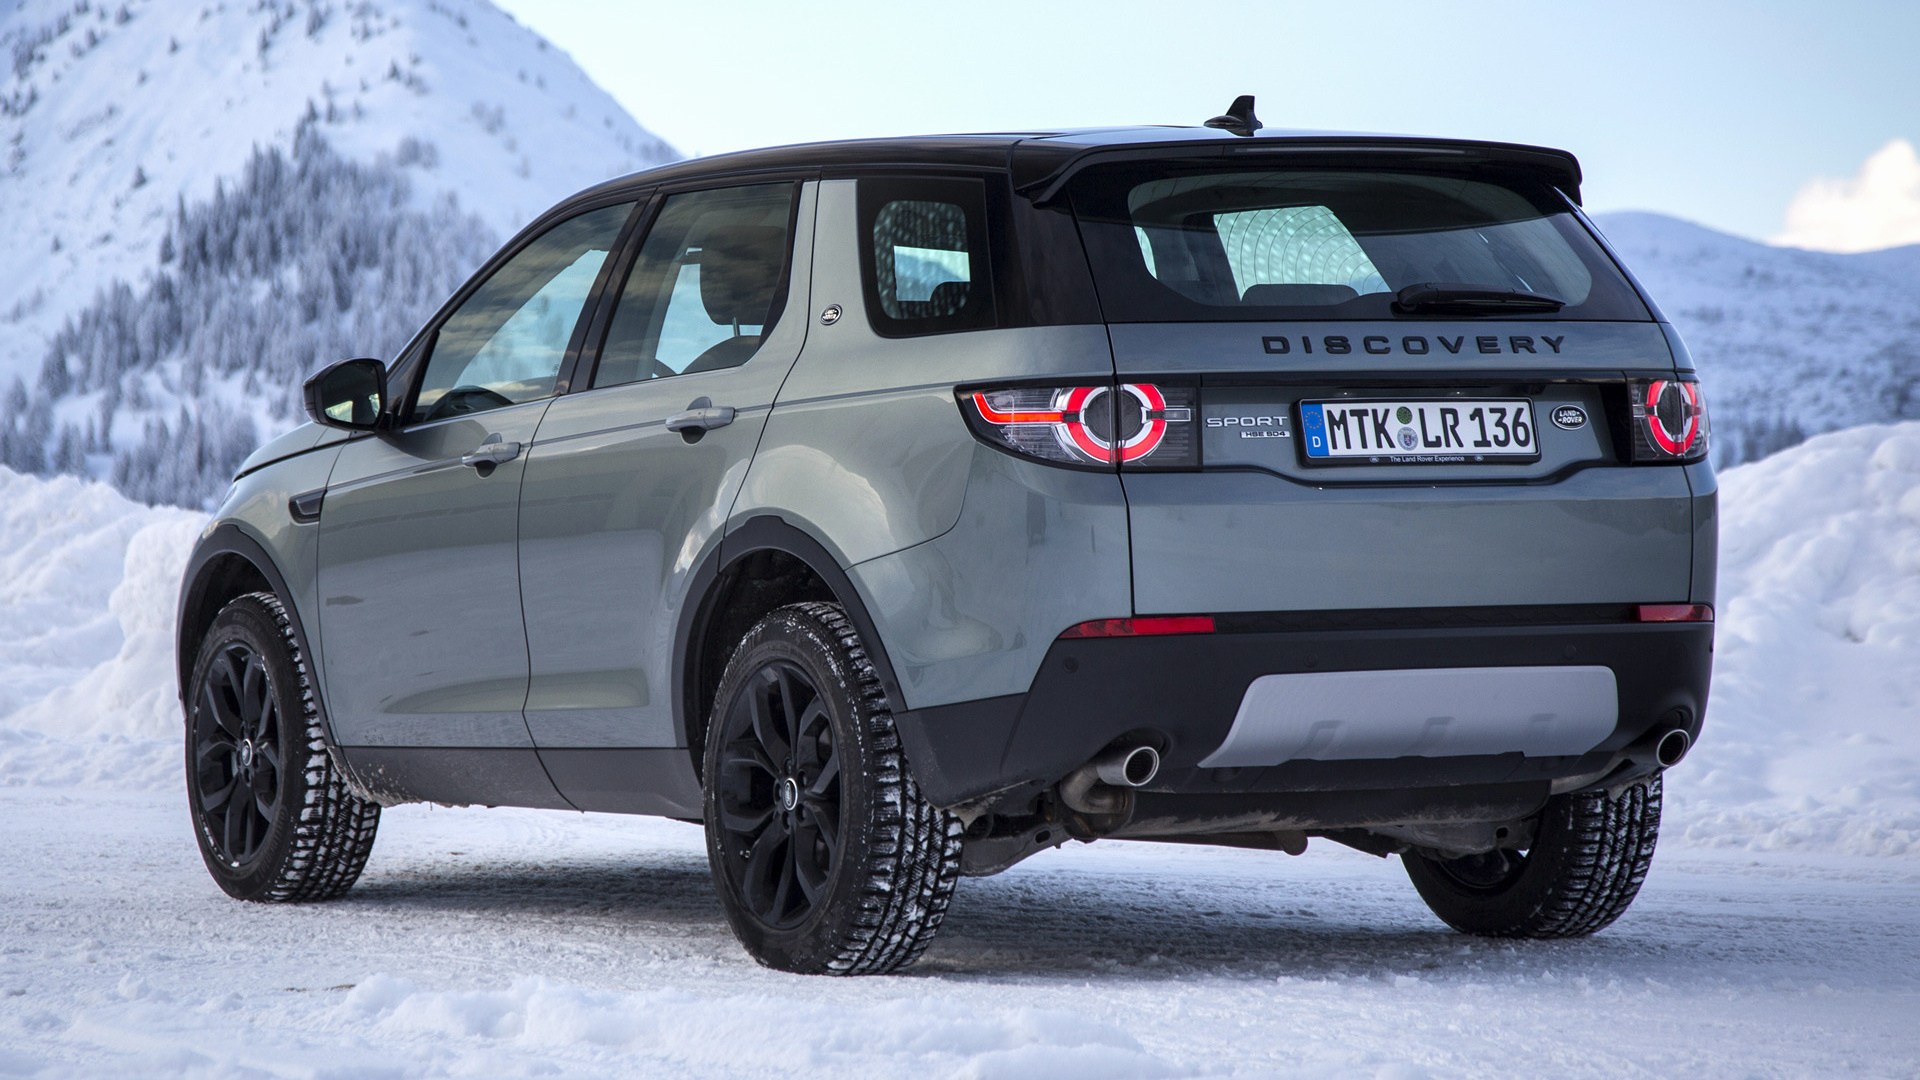 Discovery Sport Land Rover >> Land Rover Discovery Sport HSE Black Design Pack (2015) Wallpapers and HD Images - Car Pixel